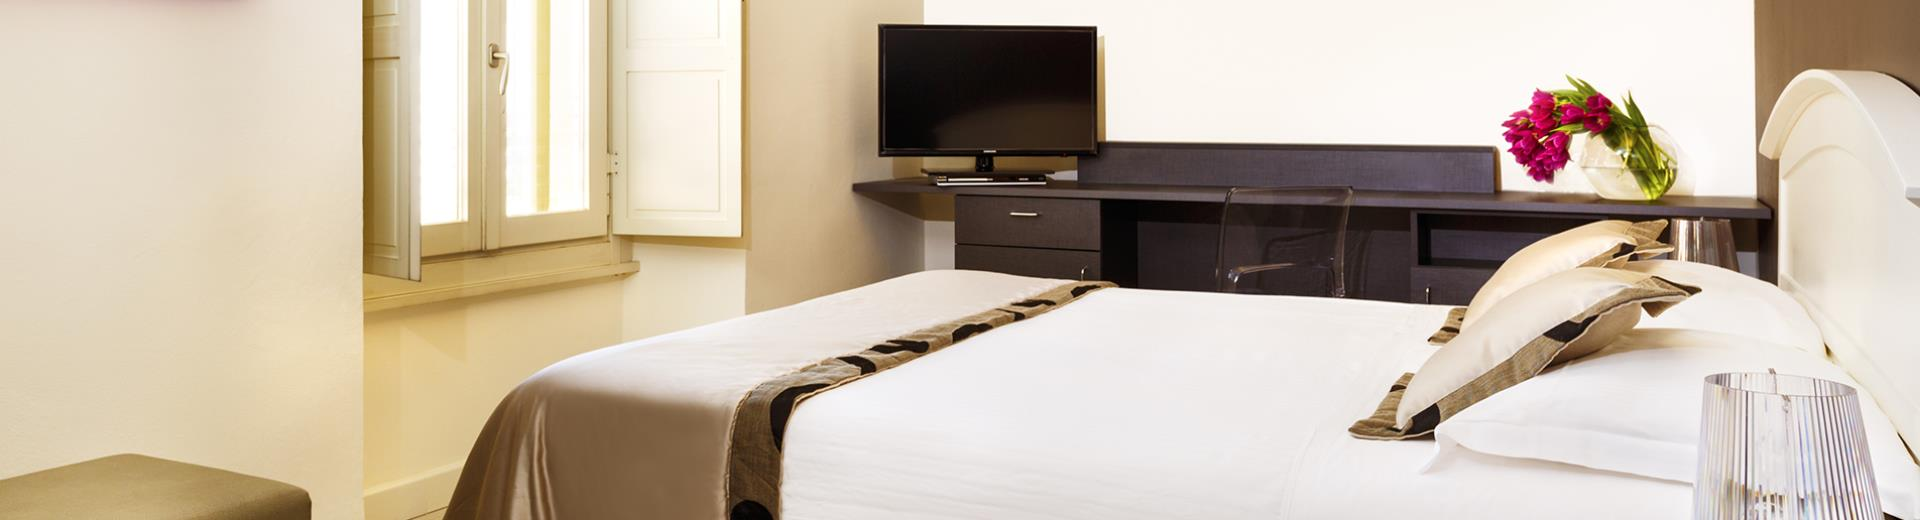 Standard Room-Plus Hotel Royal Superga Cuneo